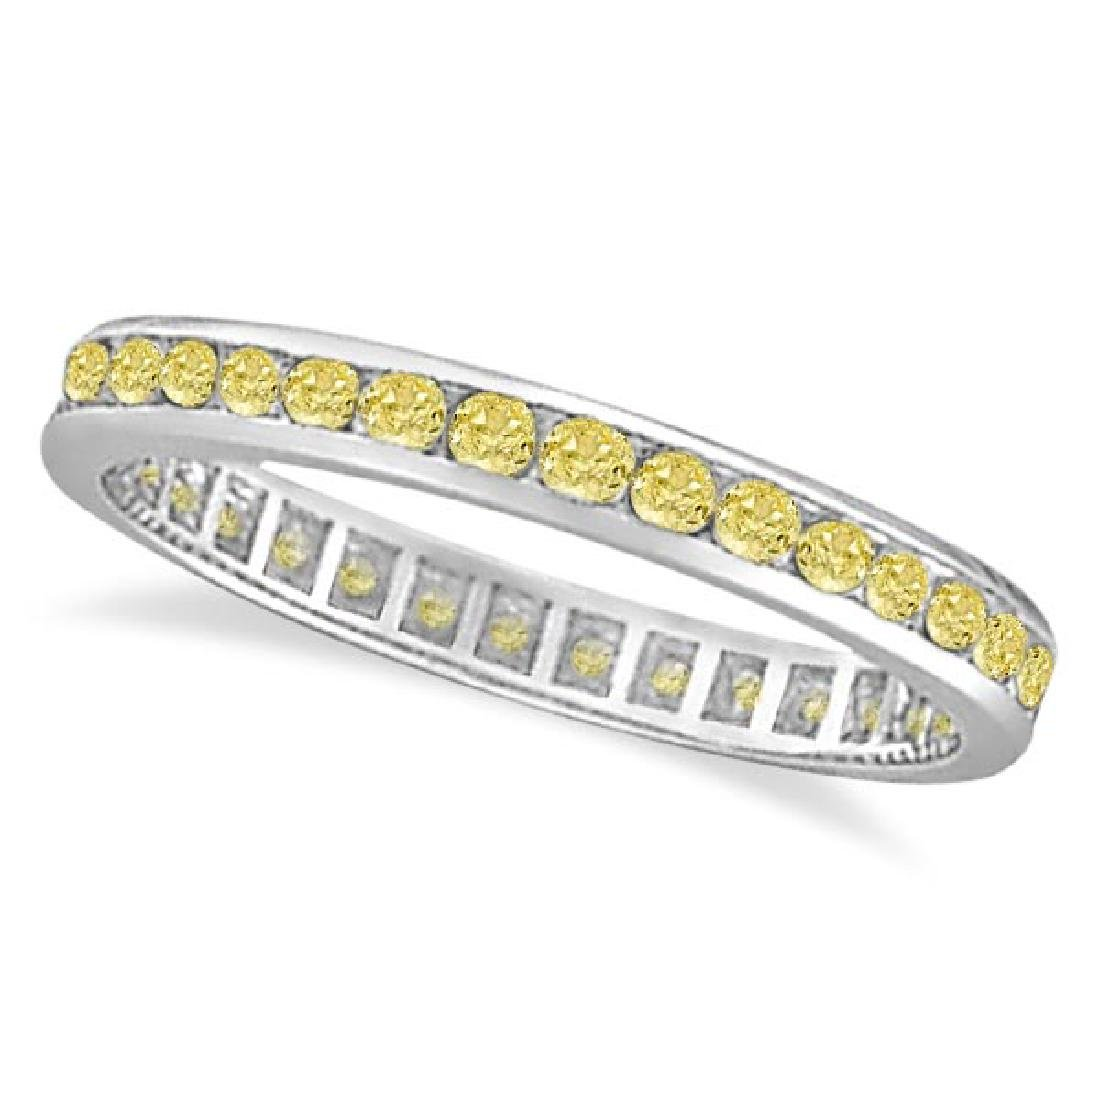 Channel Set Yellow Canary Diamond Eternity Ring 14k Whi